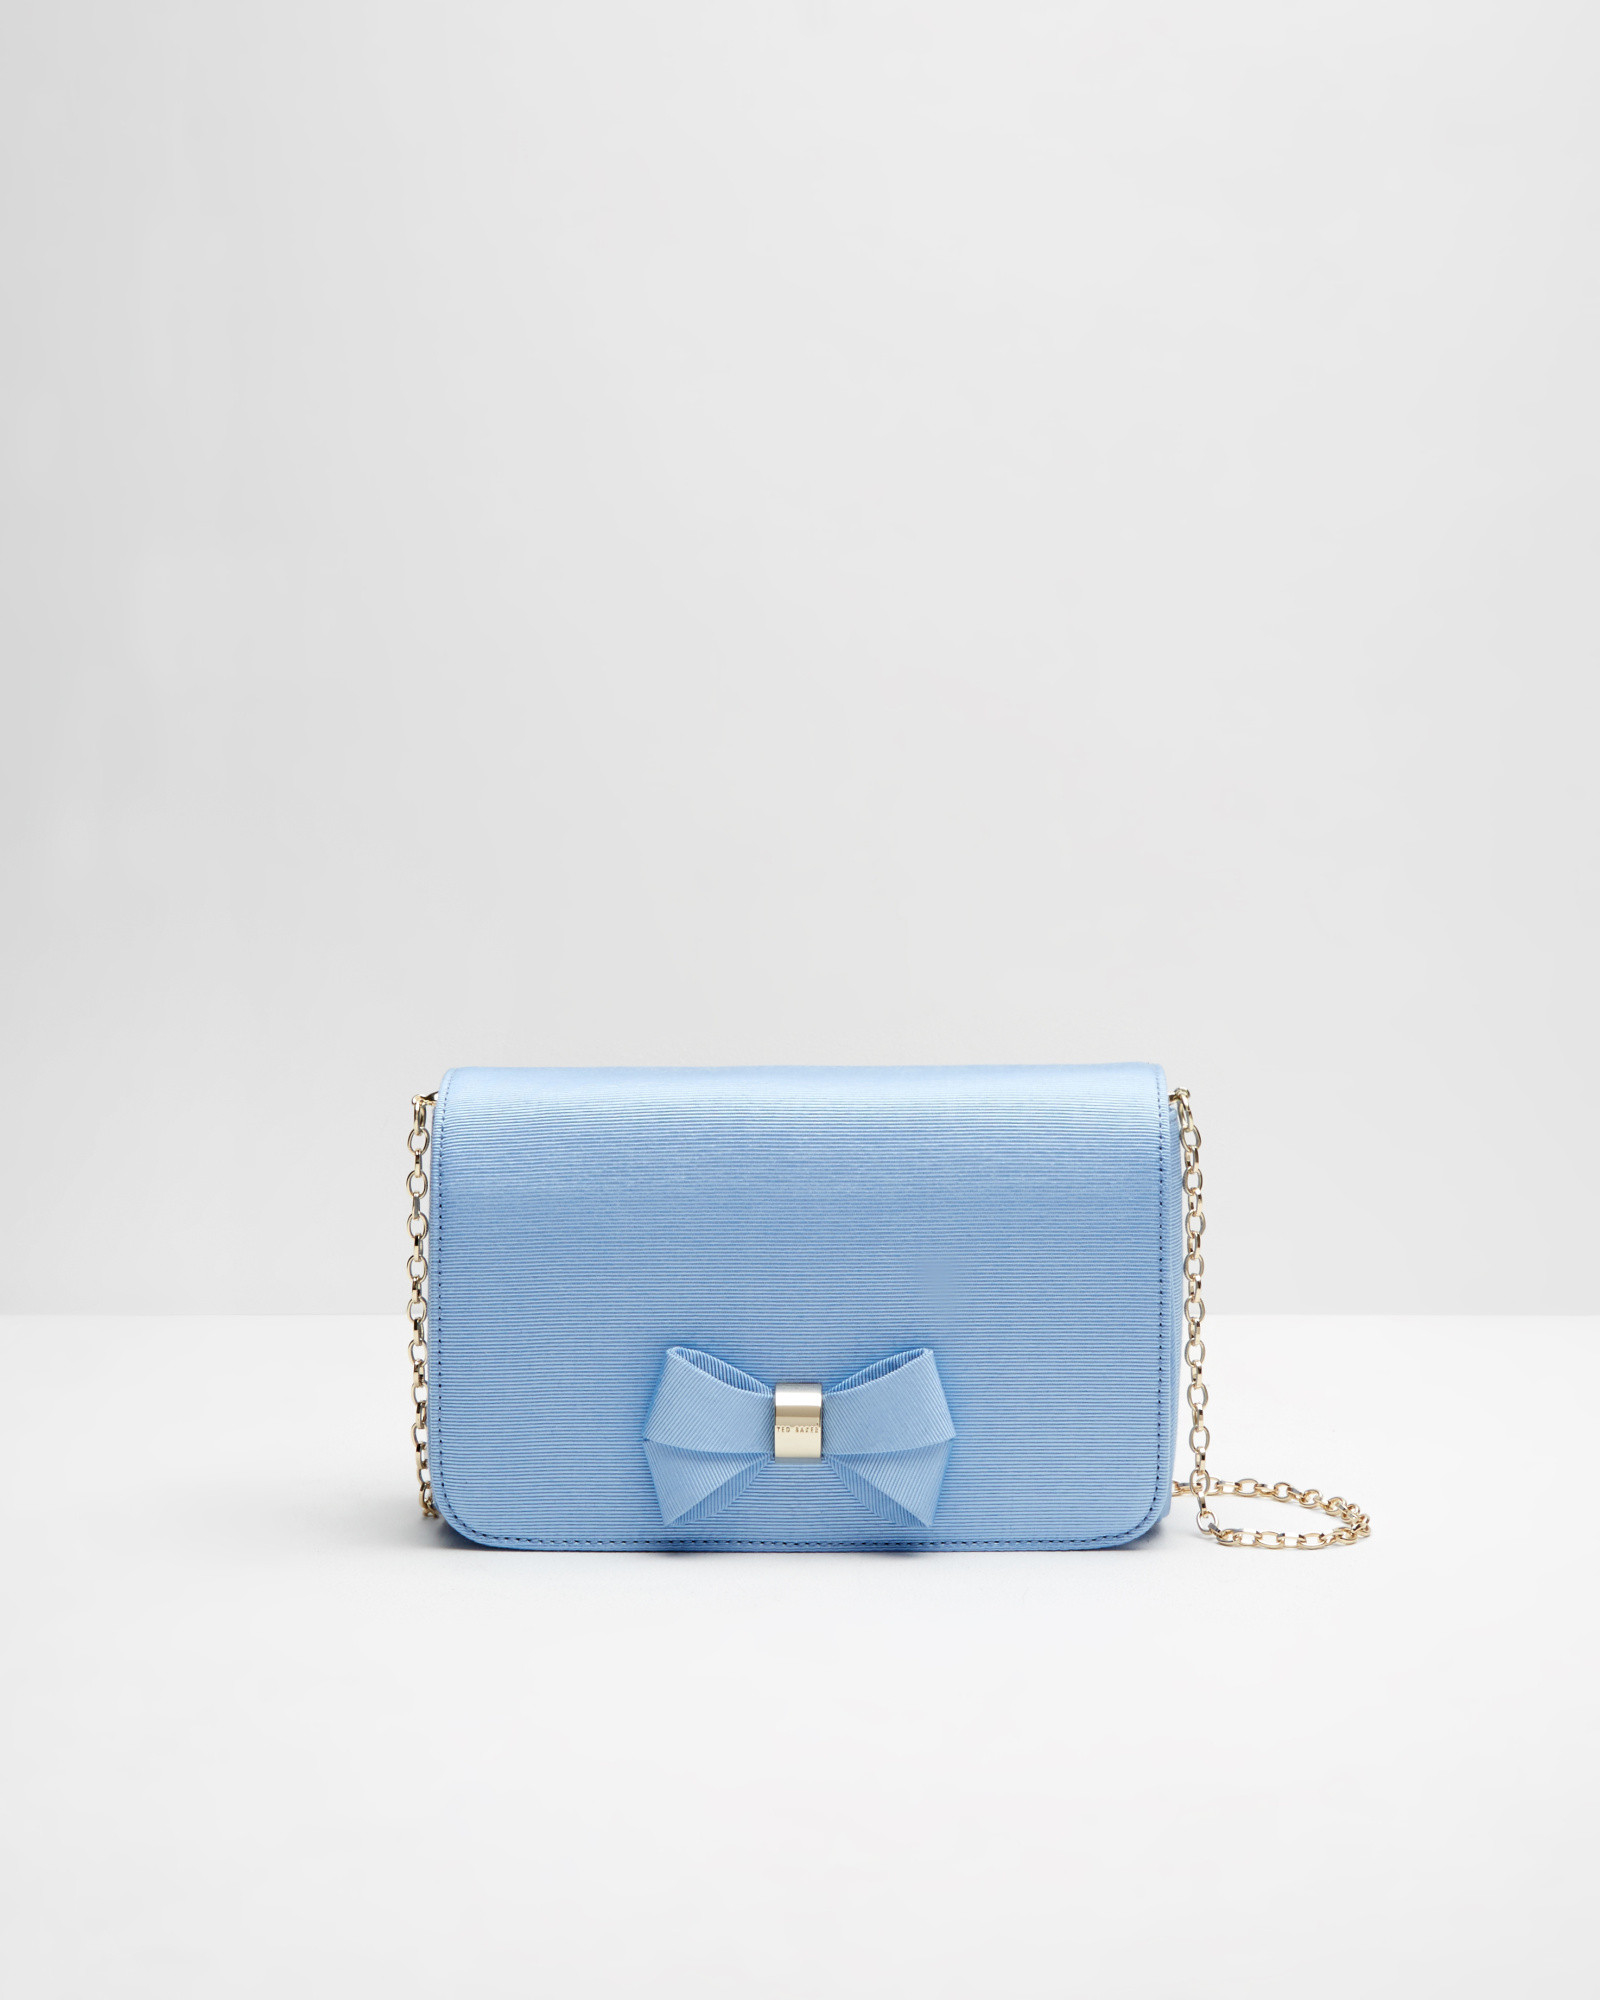 6ebcc94fe Ted Baker Bow Detail Clutch Bag in Blue - Lyst